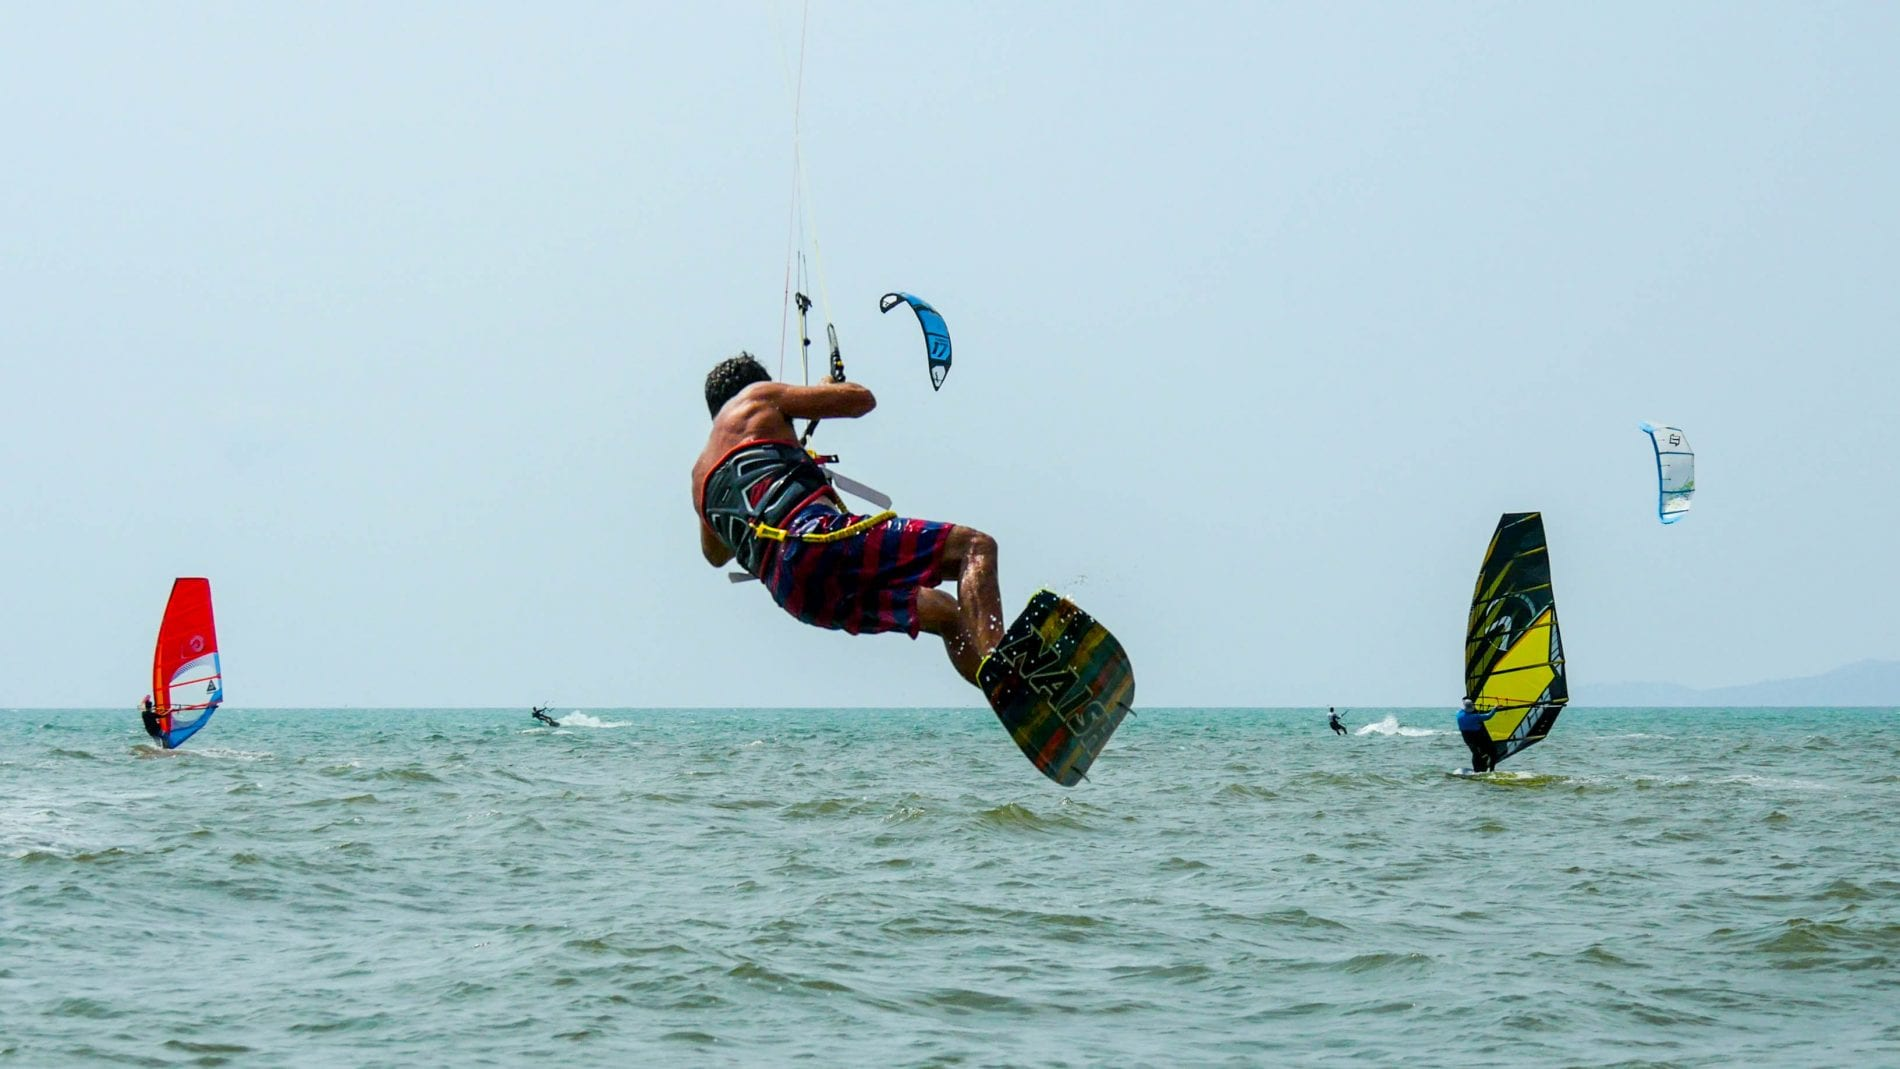 ricardo-kite-boarding-na-jomtien-thailand-4k-photo